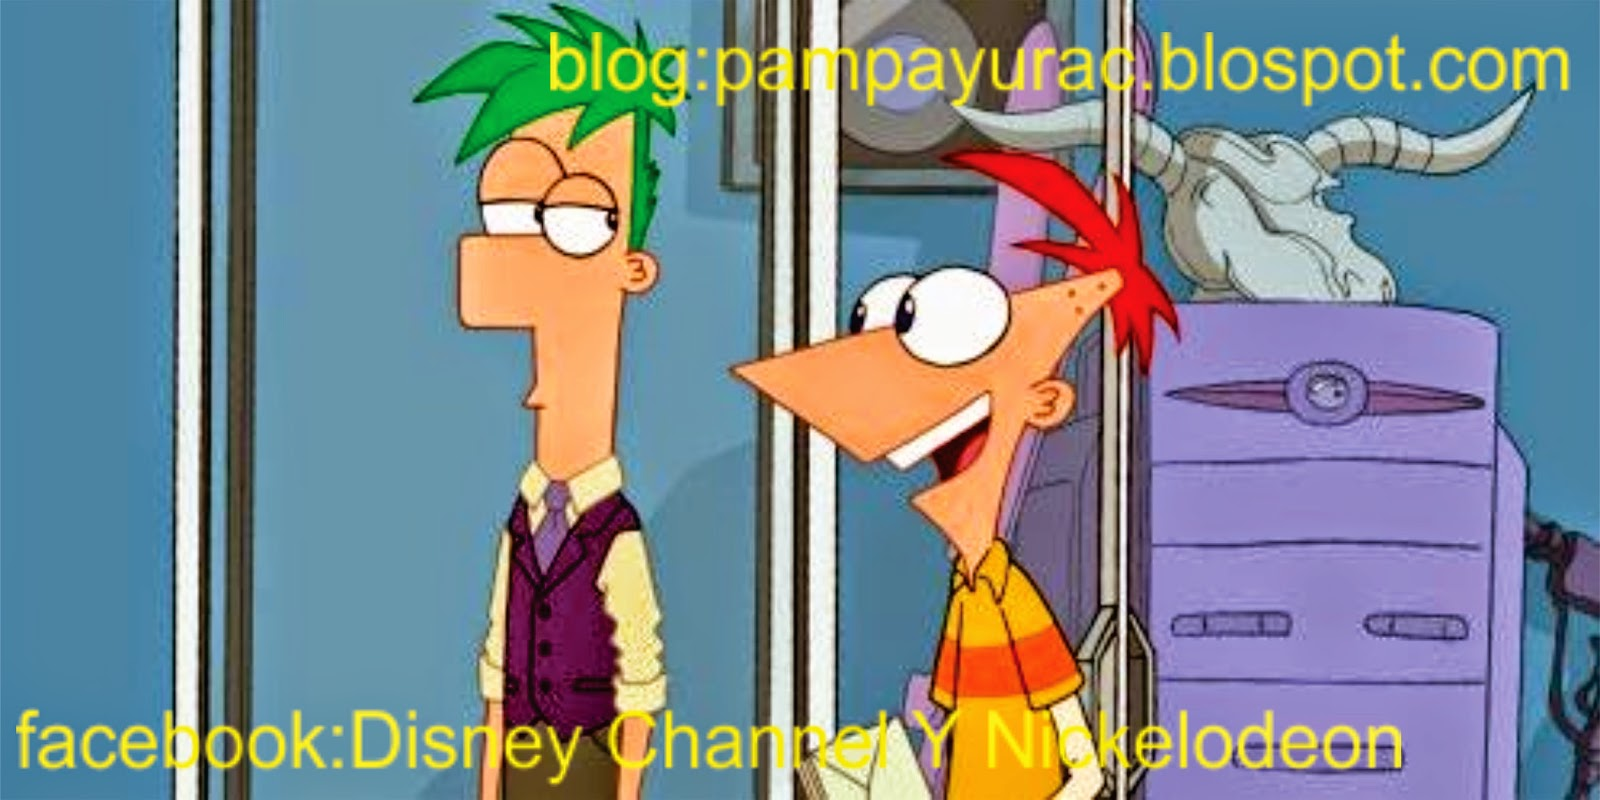 Colorea A Phineas Y Ferb Personajes De Disney Channel: Phineas And Ferb: Act Your Age: Disney XD Revela Videos